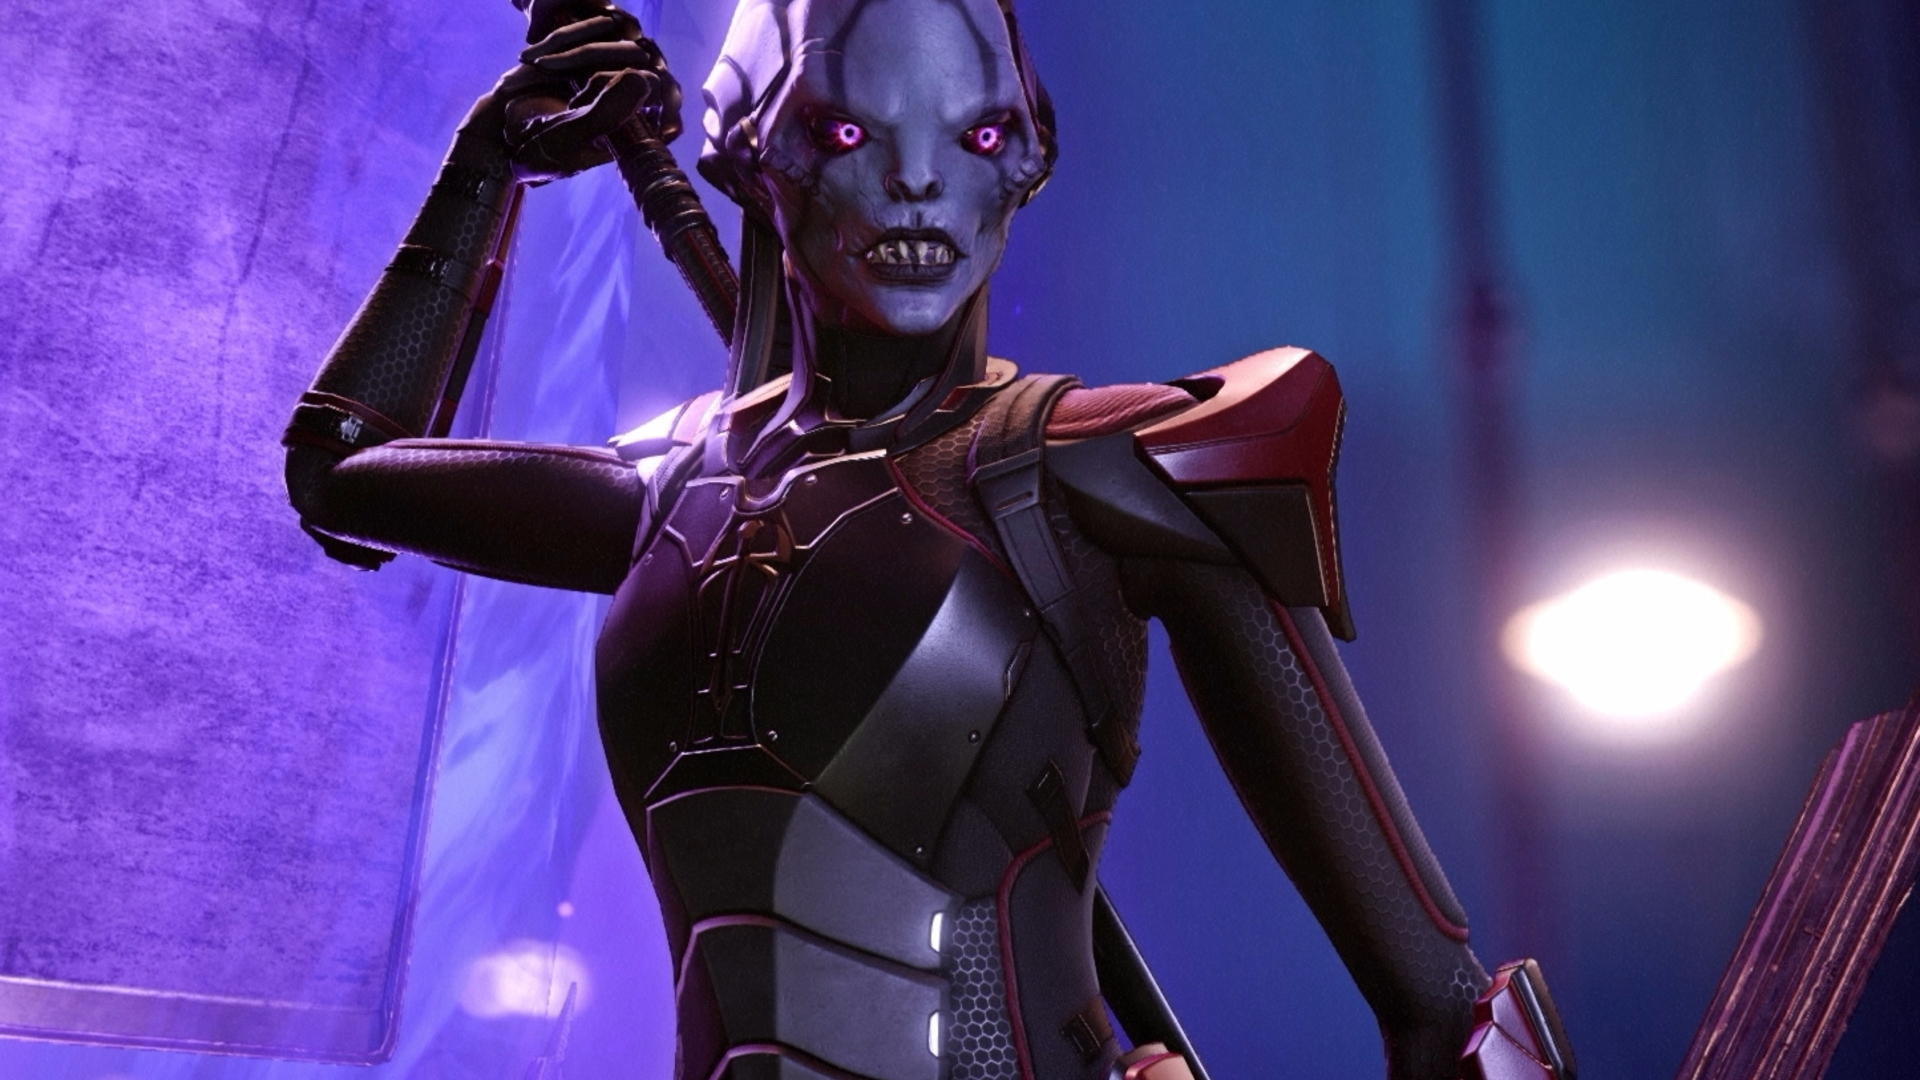 xcom 2 multiplayer guide